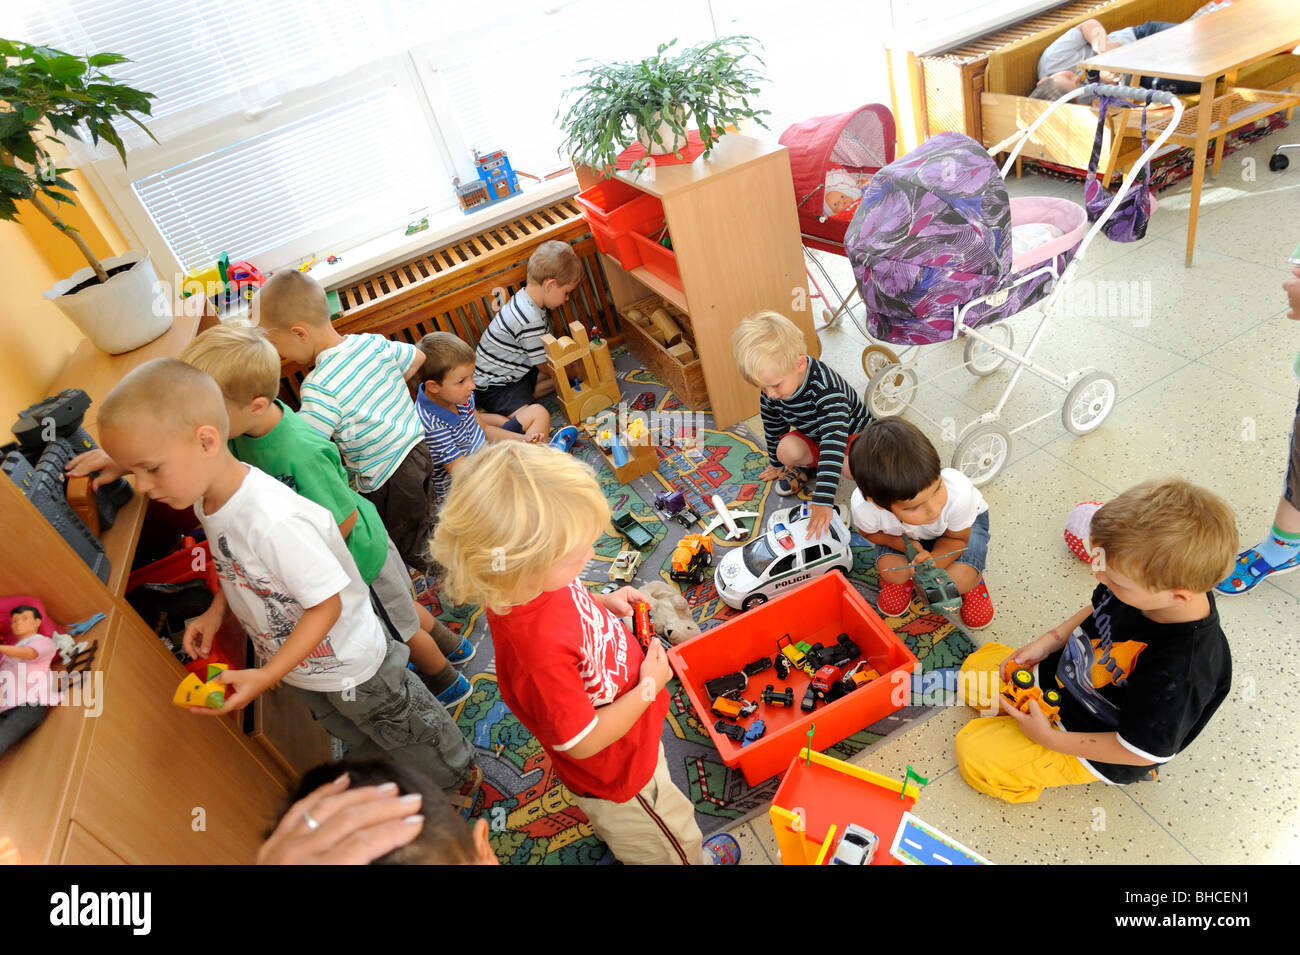 Kinder Garden: Preschool Children Playing In Class With Toys Stock Photo